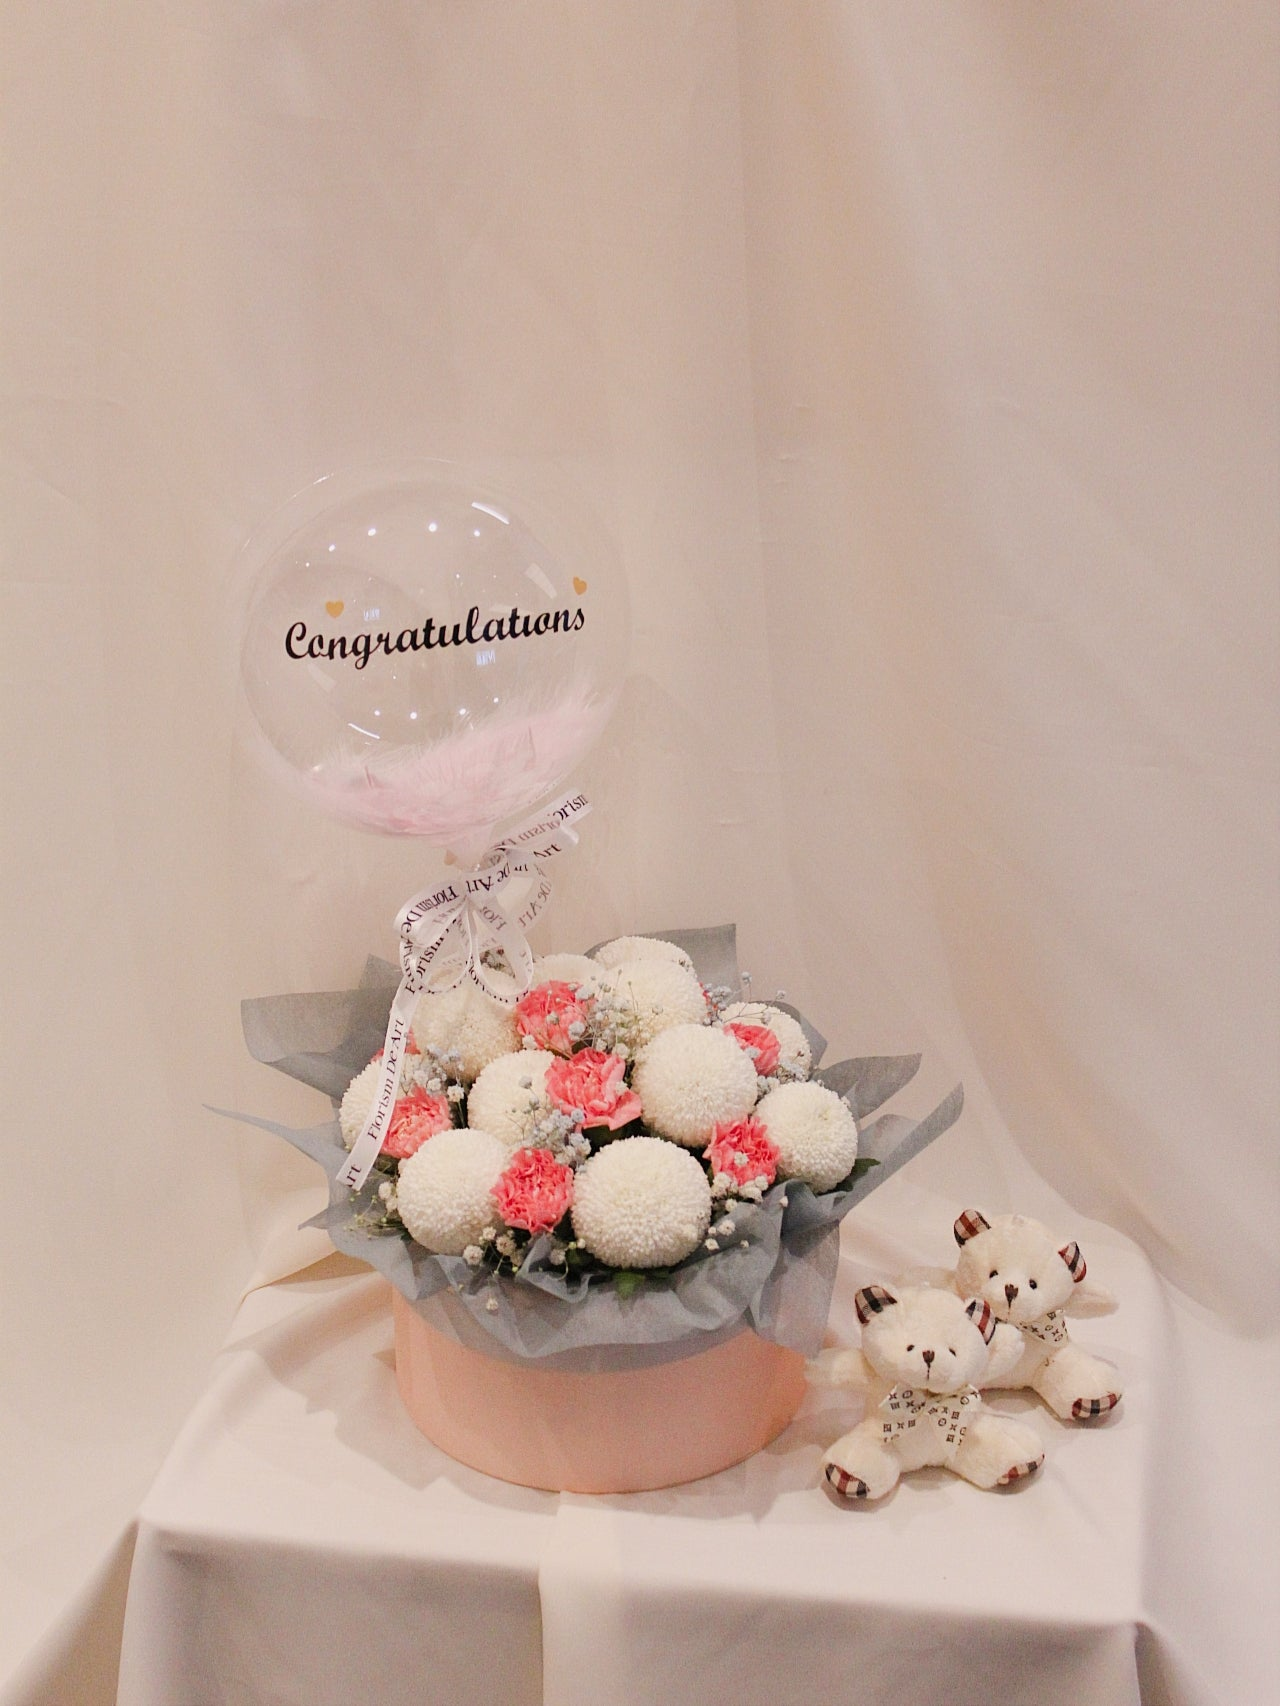 New Born Baby Flower Box & Balloon